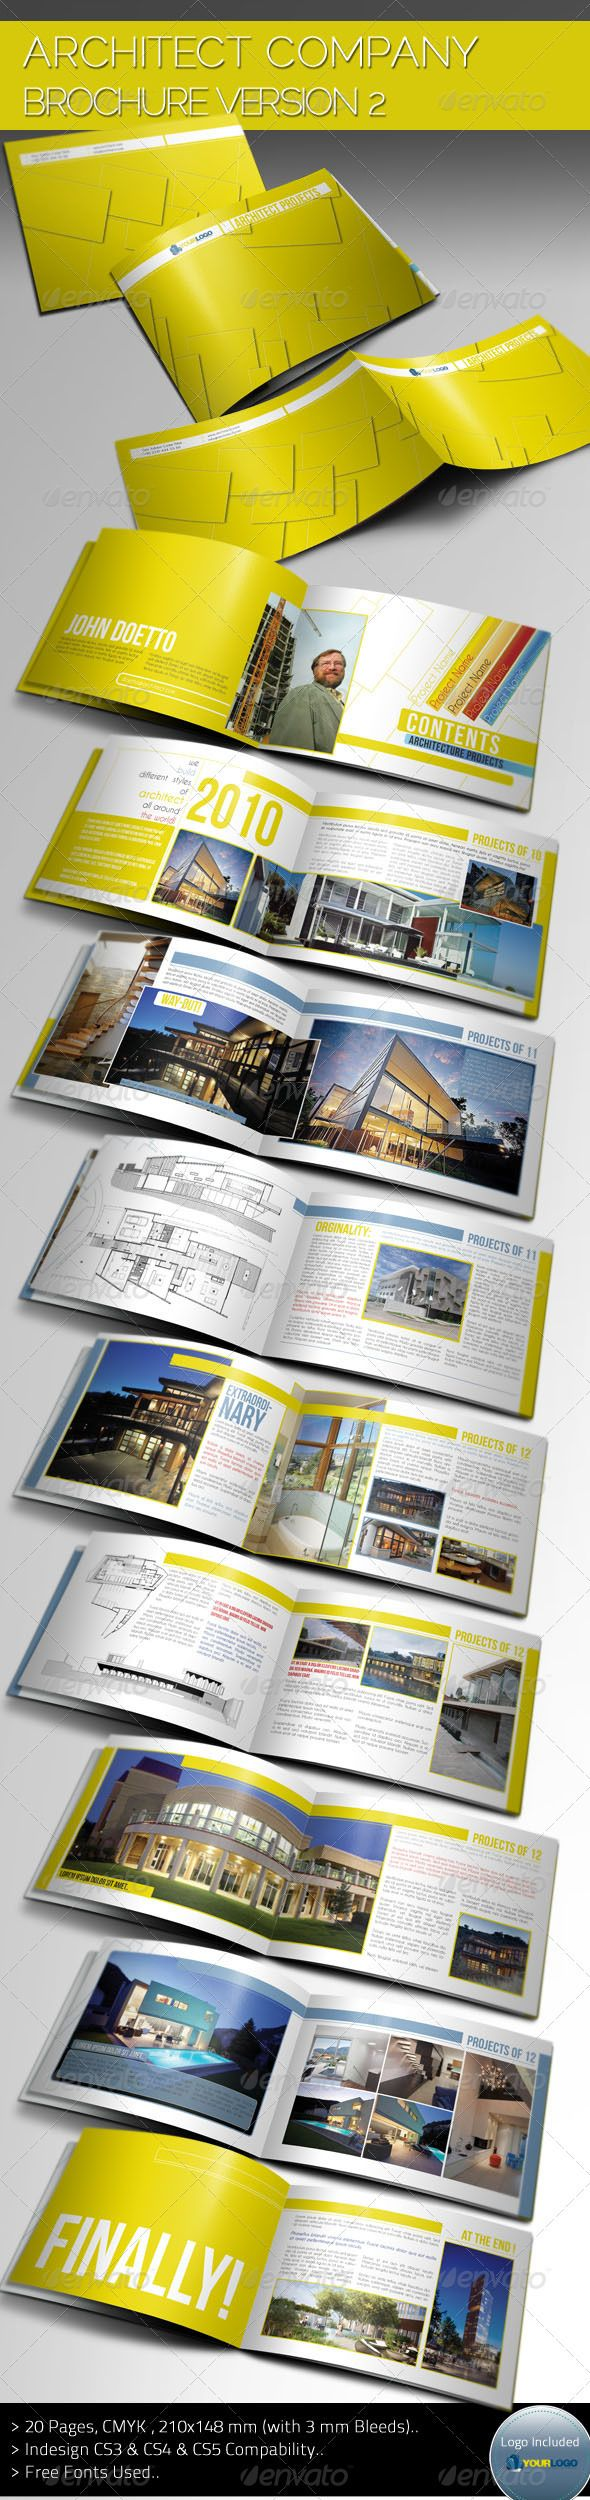 architecture brochure design pdf - best 25 architecture portfolio pdf ideas on pinterest